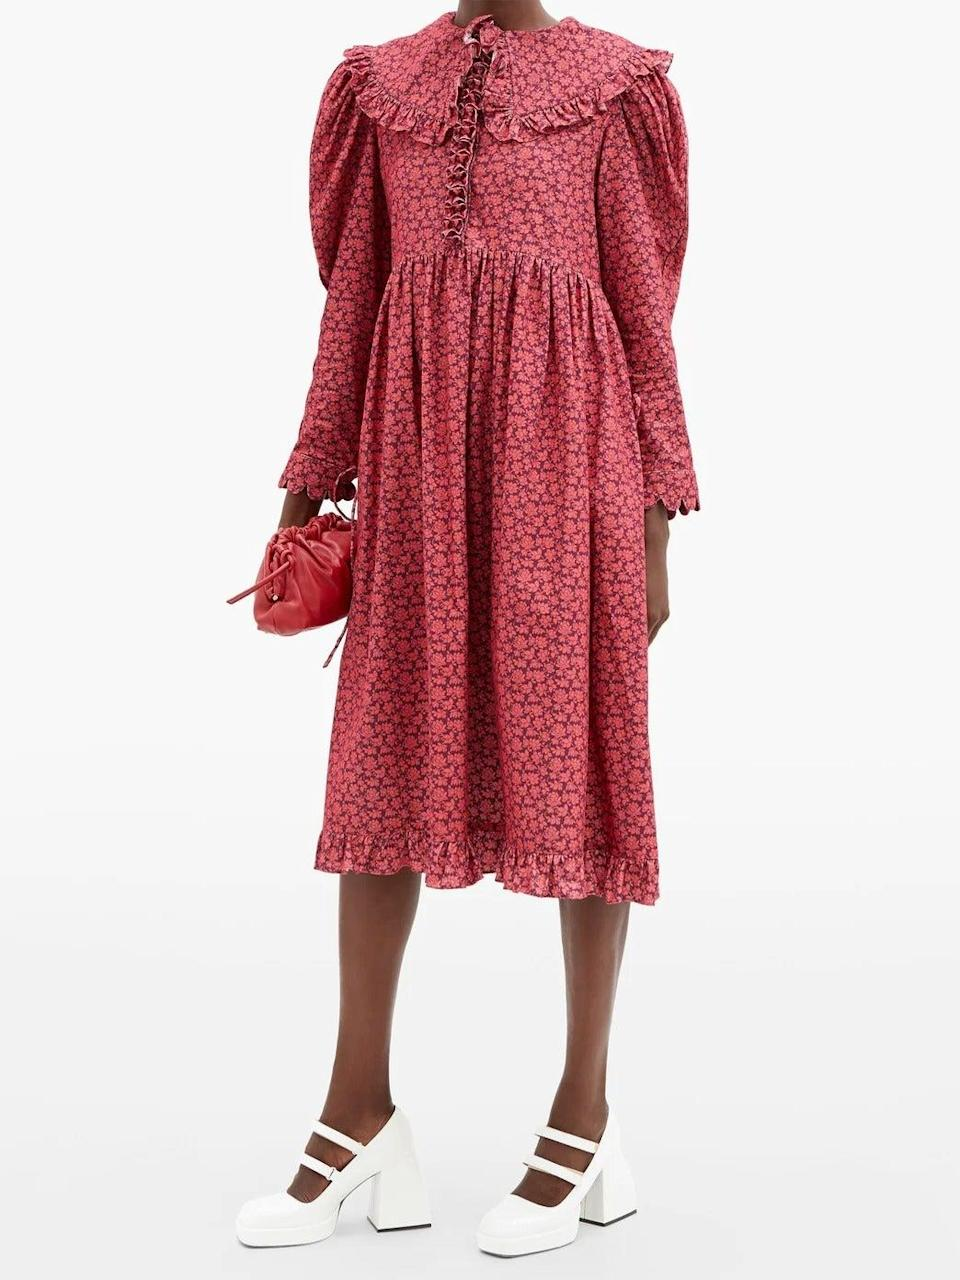 """<br><br><strong>Horror Vacui</strong> Lisi Floral Print Cotton Corduroy Dress, $, available at <a href=""""https://www.matchesfashion.com/products/Horror-Vacui-Lisi-floral-print-cotton-corduroy-dress%09-1382893"""" rel=""""nofollow noopener"""" target=""""_blank"""" data-ylk=""""slk:MatchesFashion.com"""" class=""""link rapid-noclick-resp"""">MatchesFashion.com</a>"""